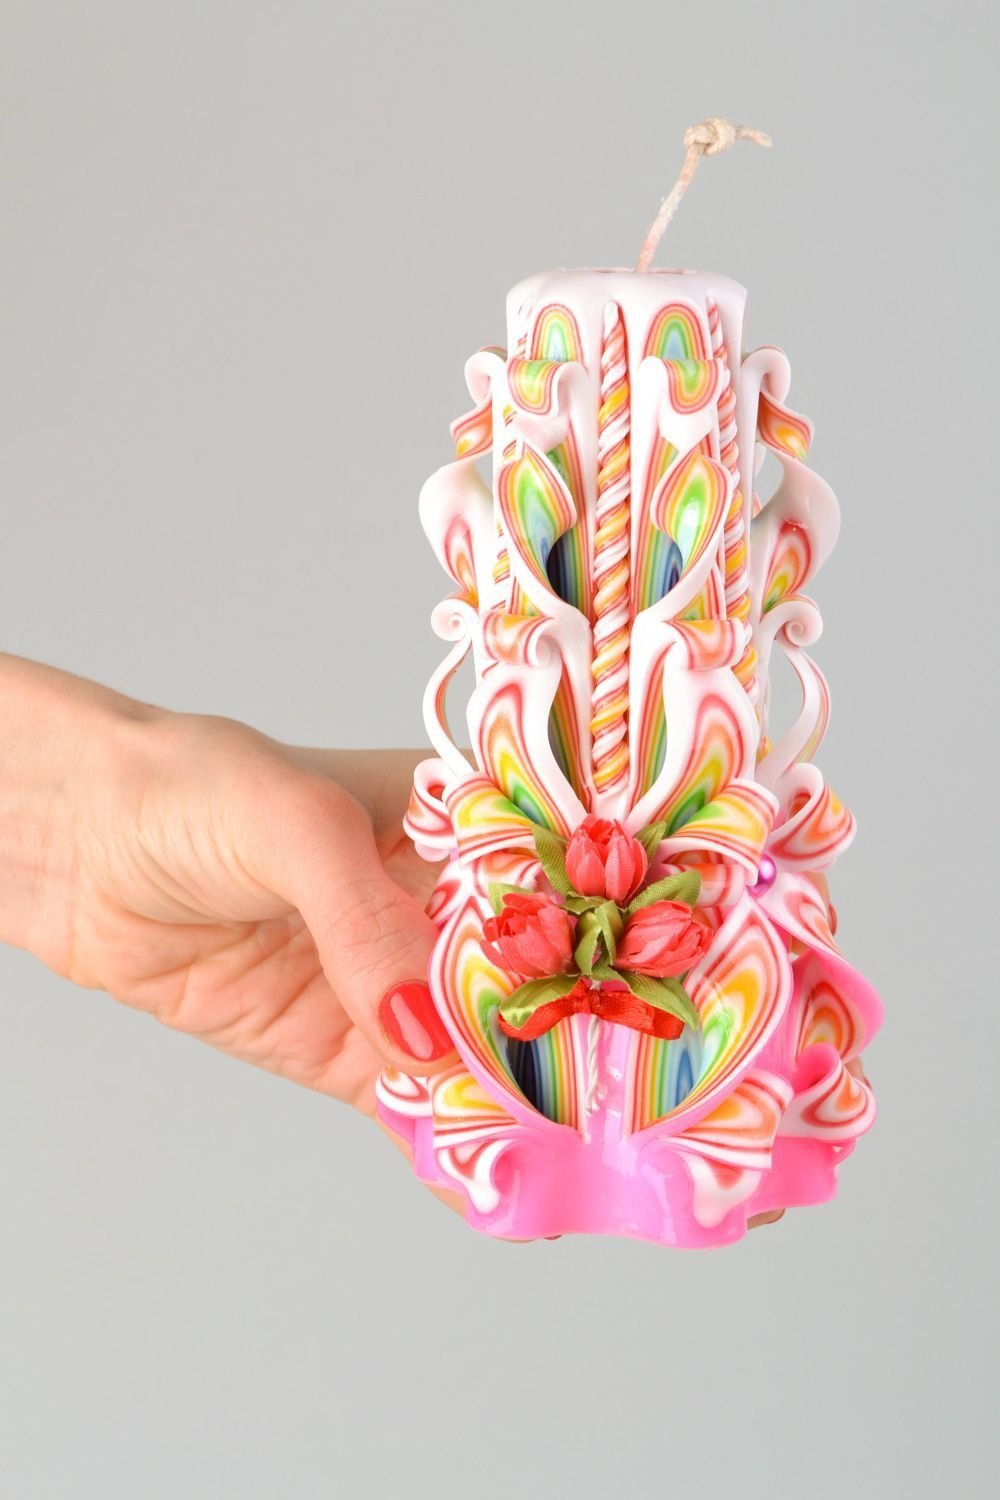 Amazon com large handmade colorful carved paraffin candle interior design ideas home kitchen